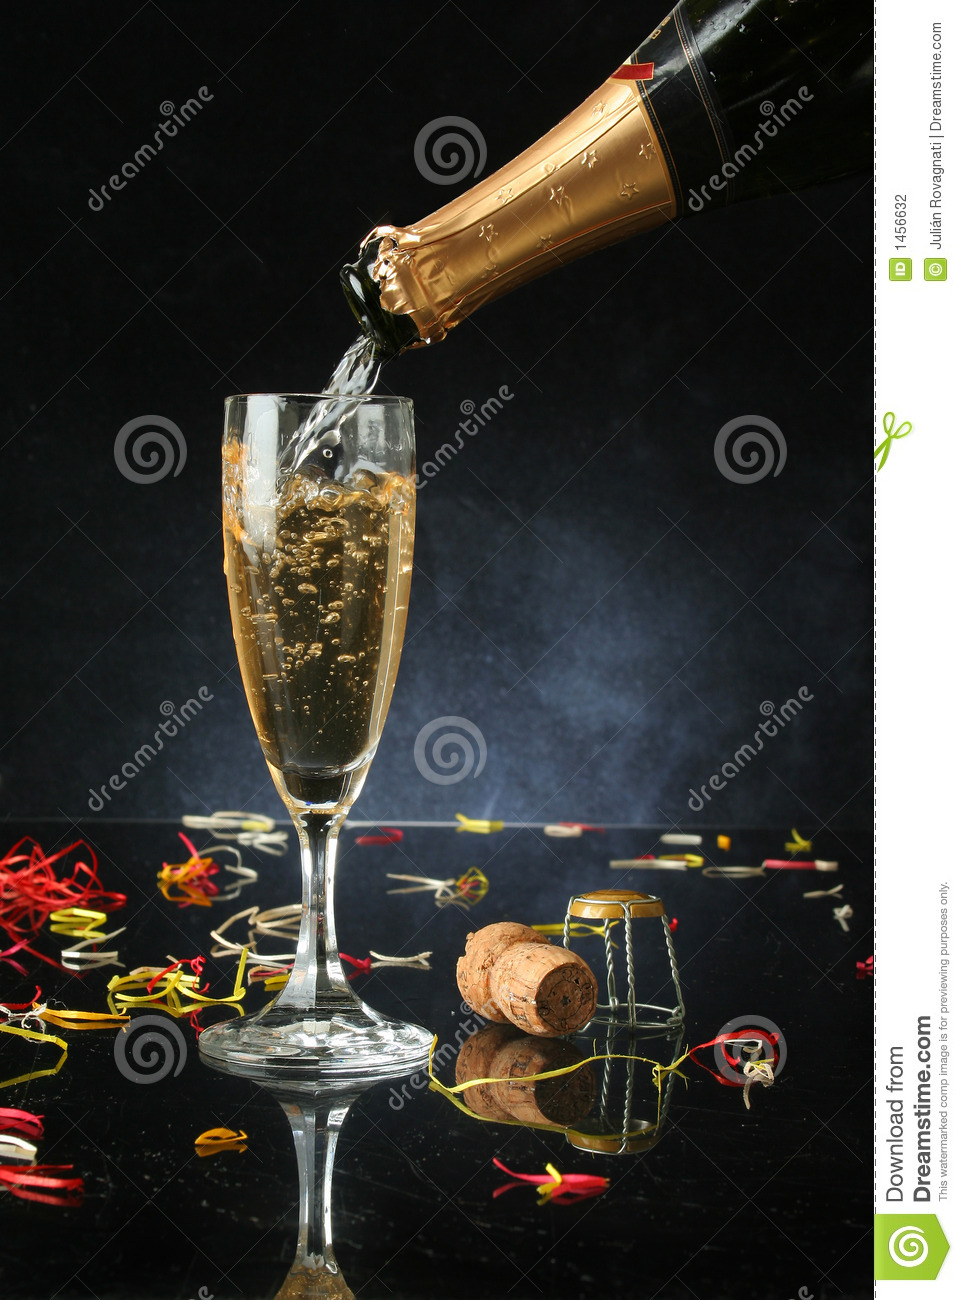 pouring a champagne flute stock photography image 1456632. Black Bedroom Furniture Sets. Home Design Ideas